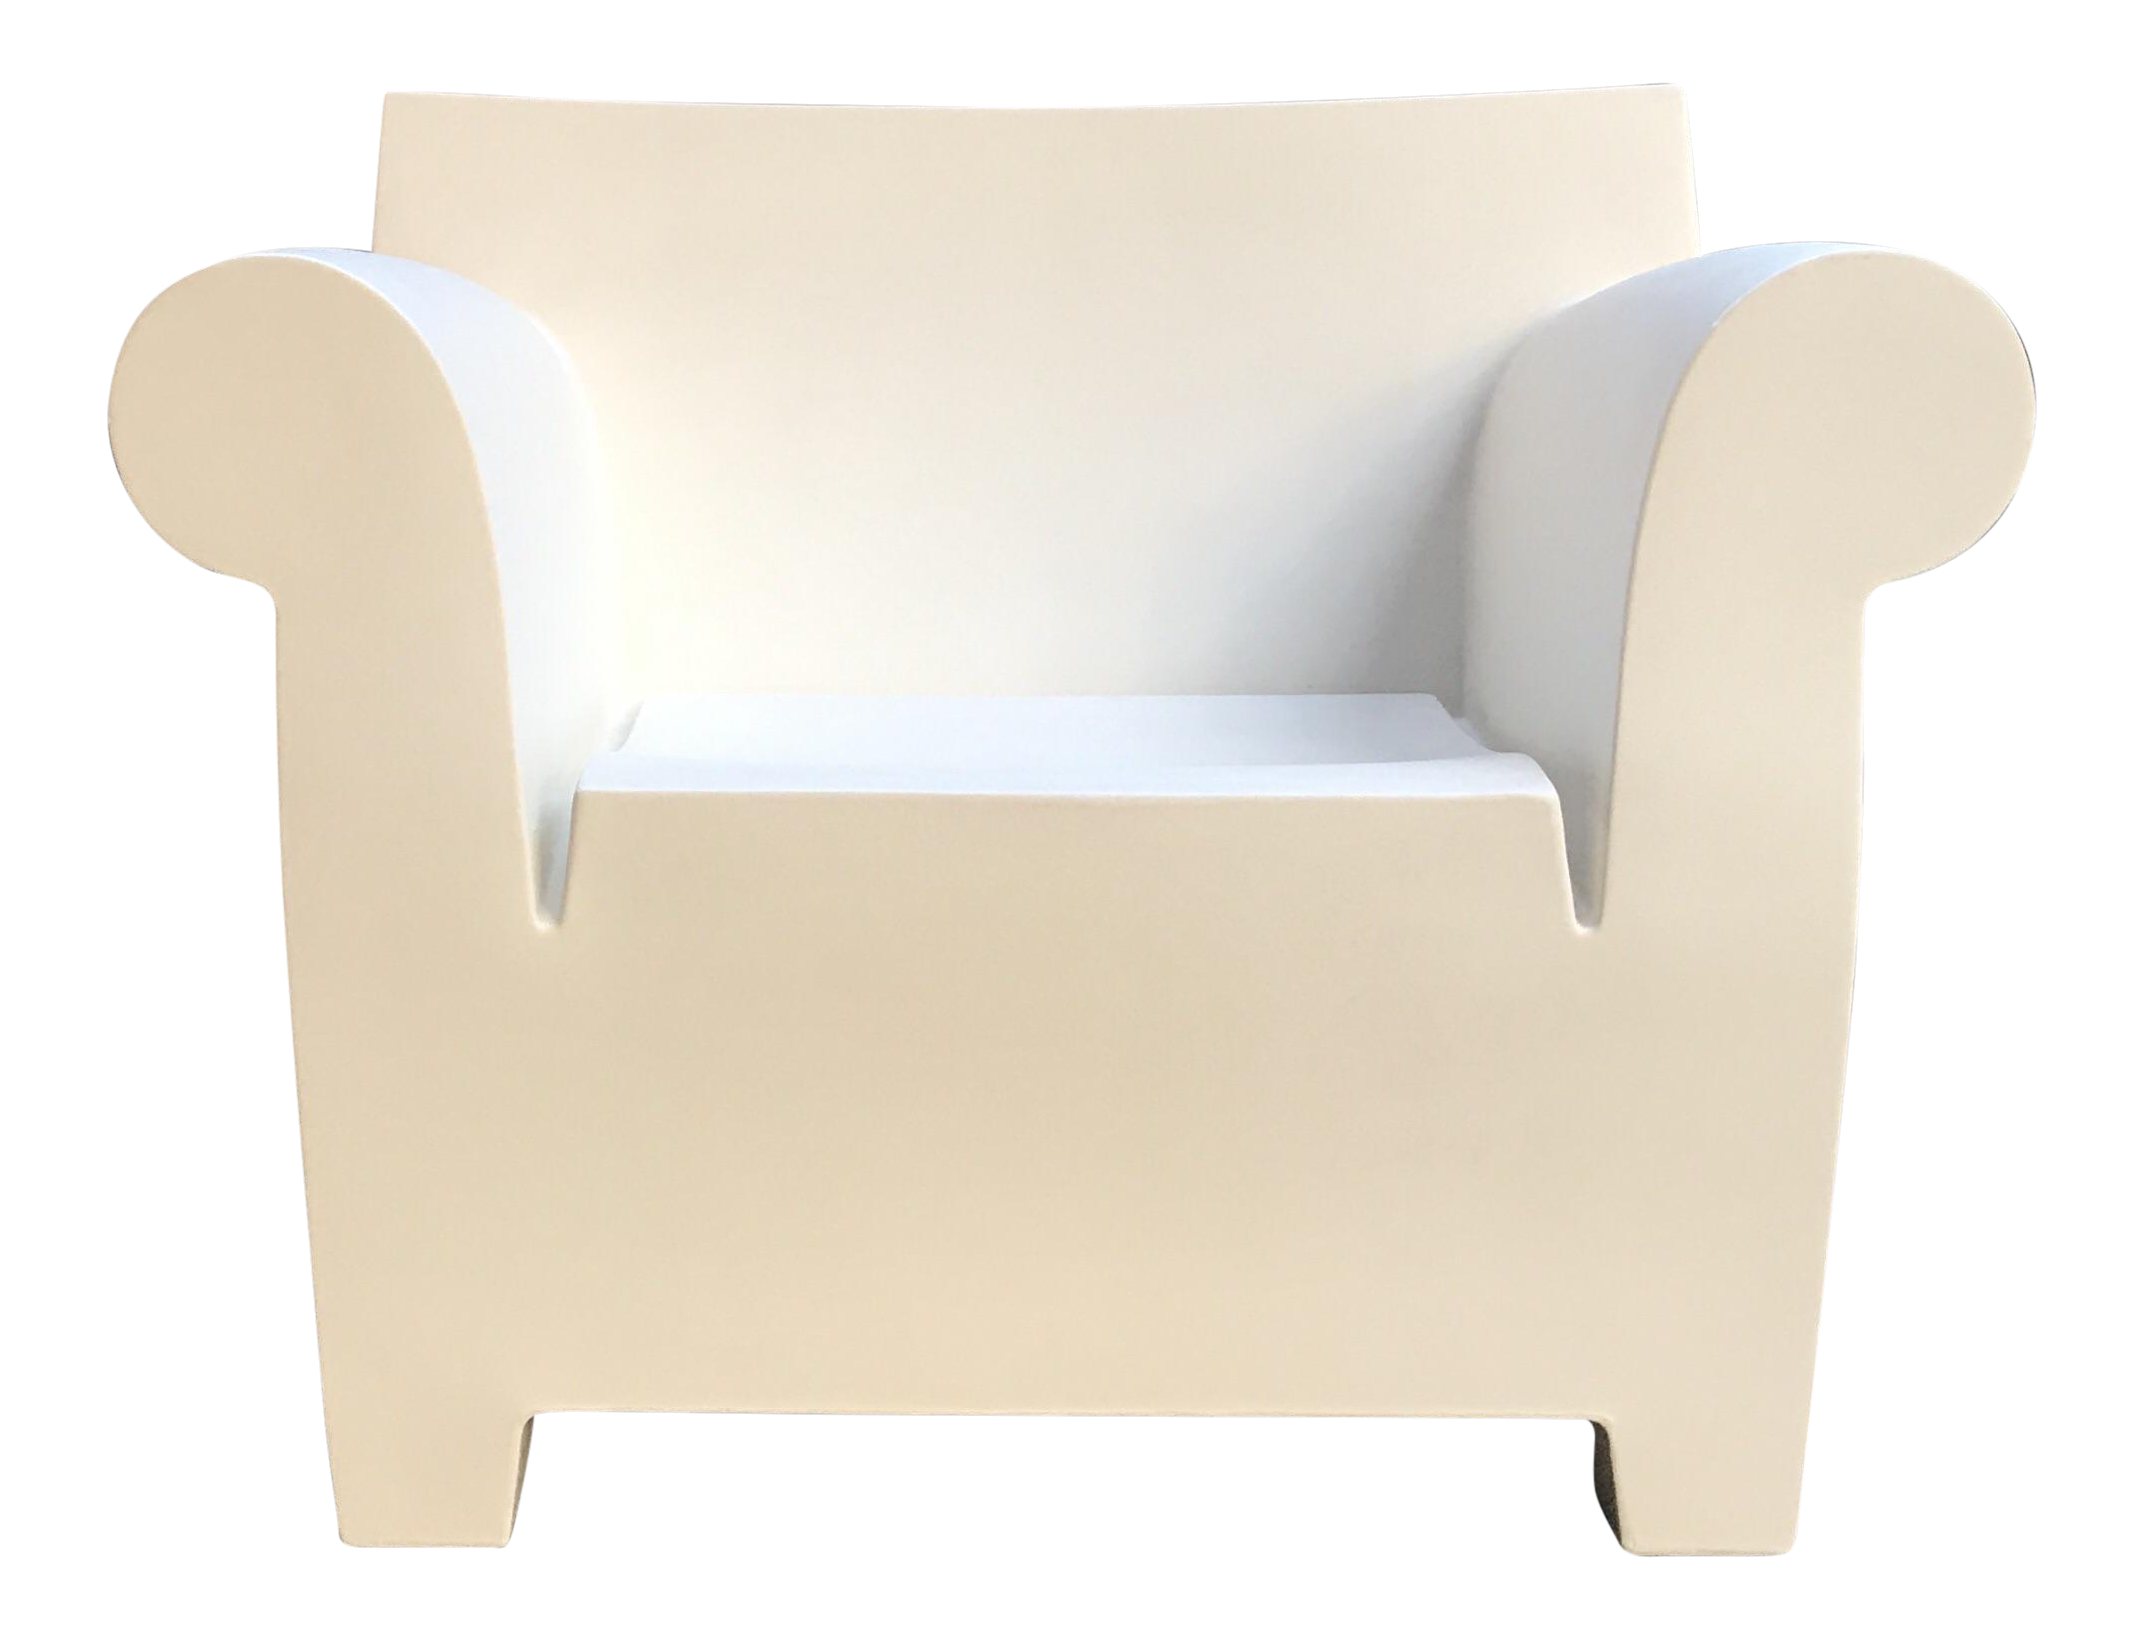 philippe starck for kartell bubble club chair image 1 of 6